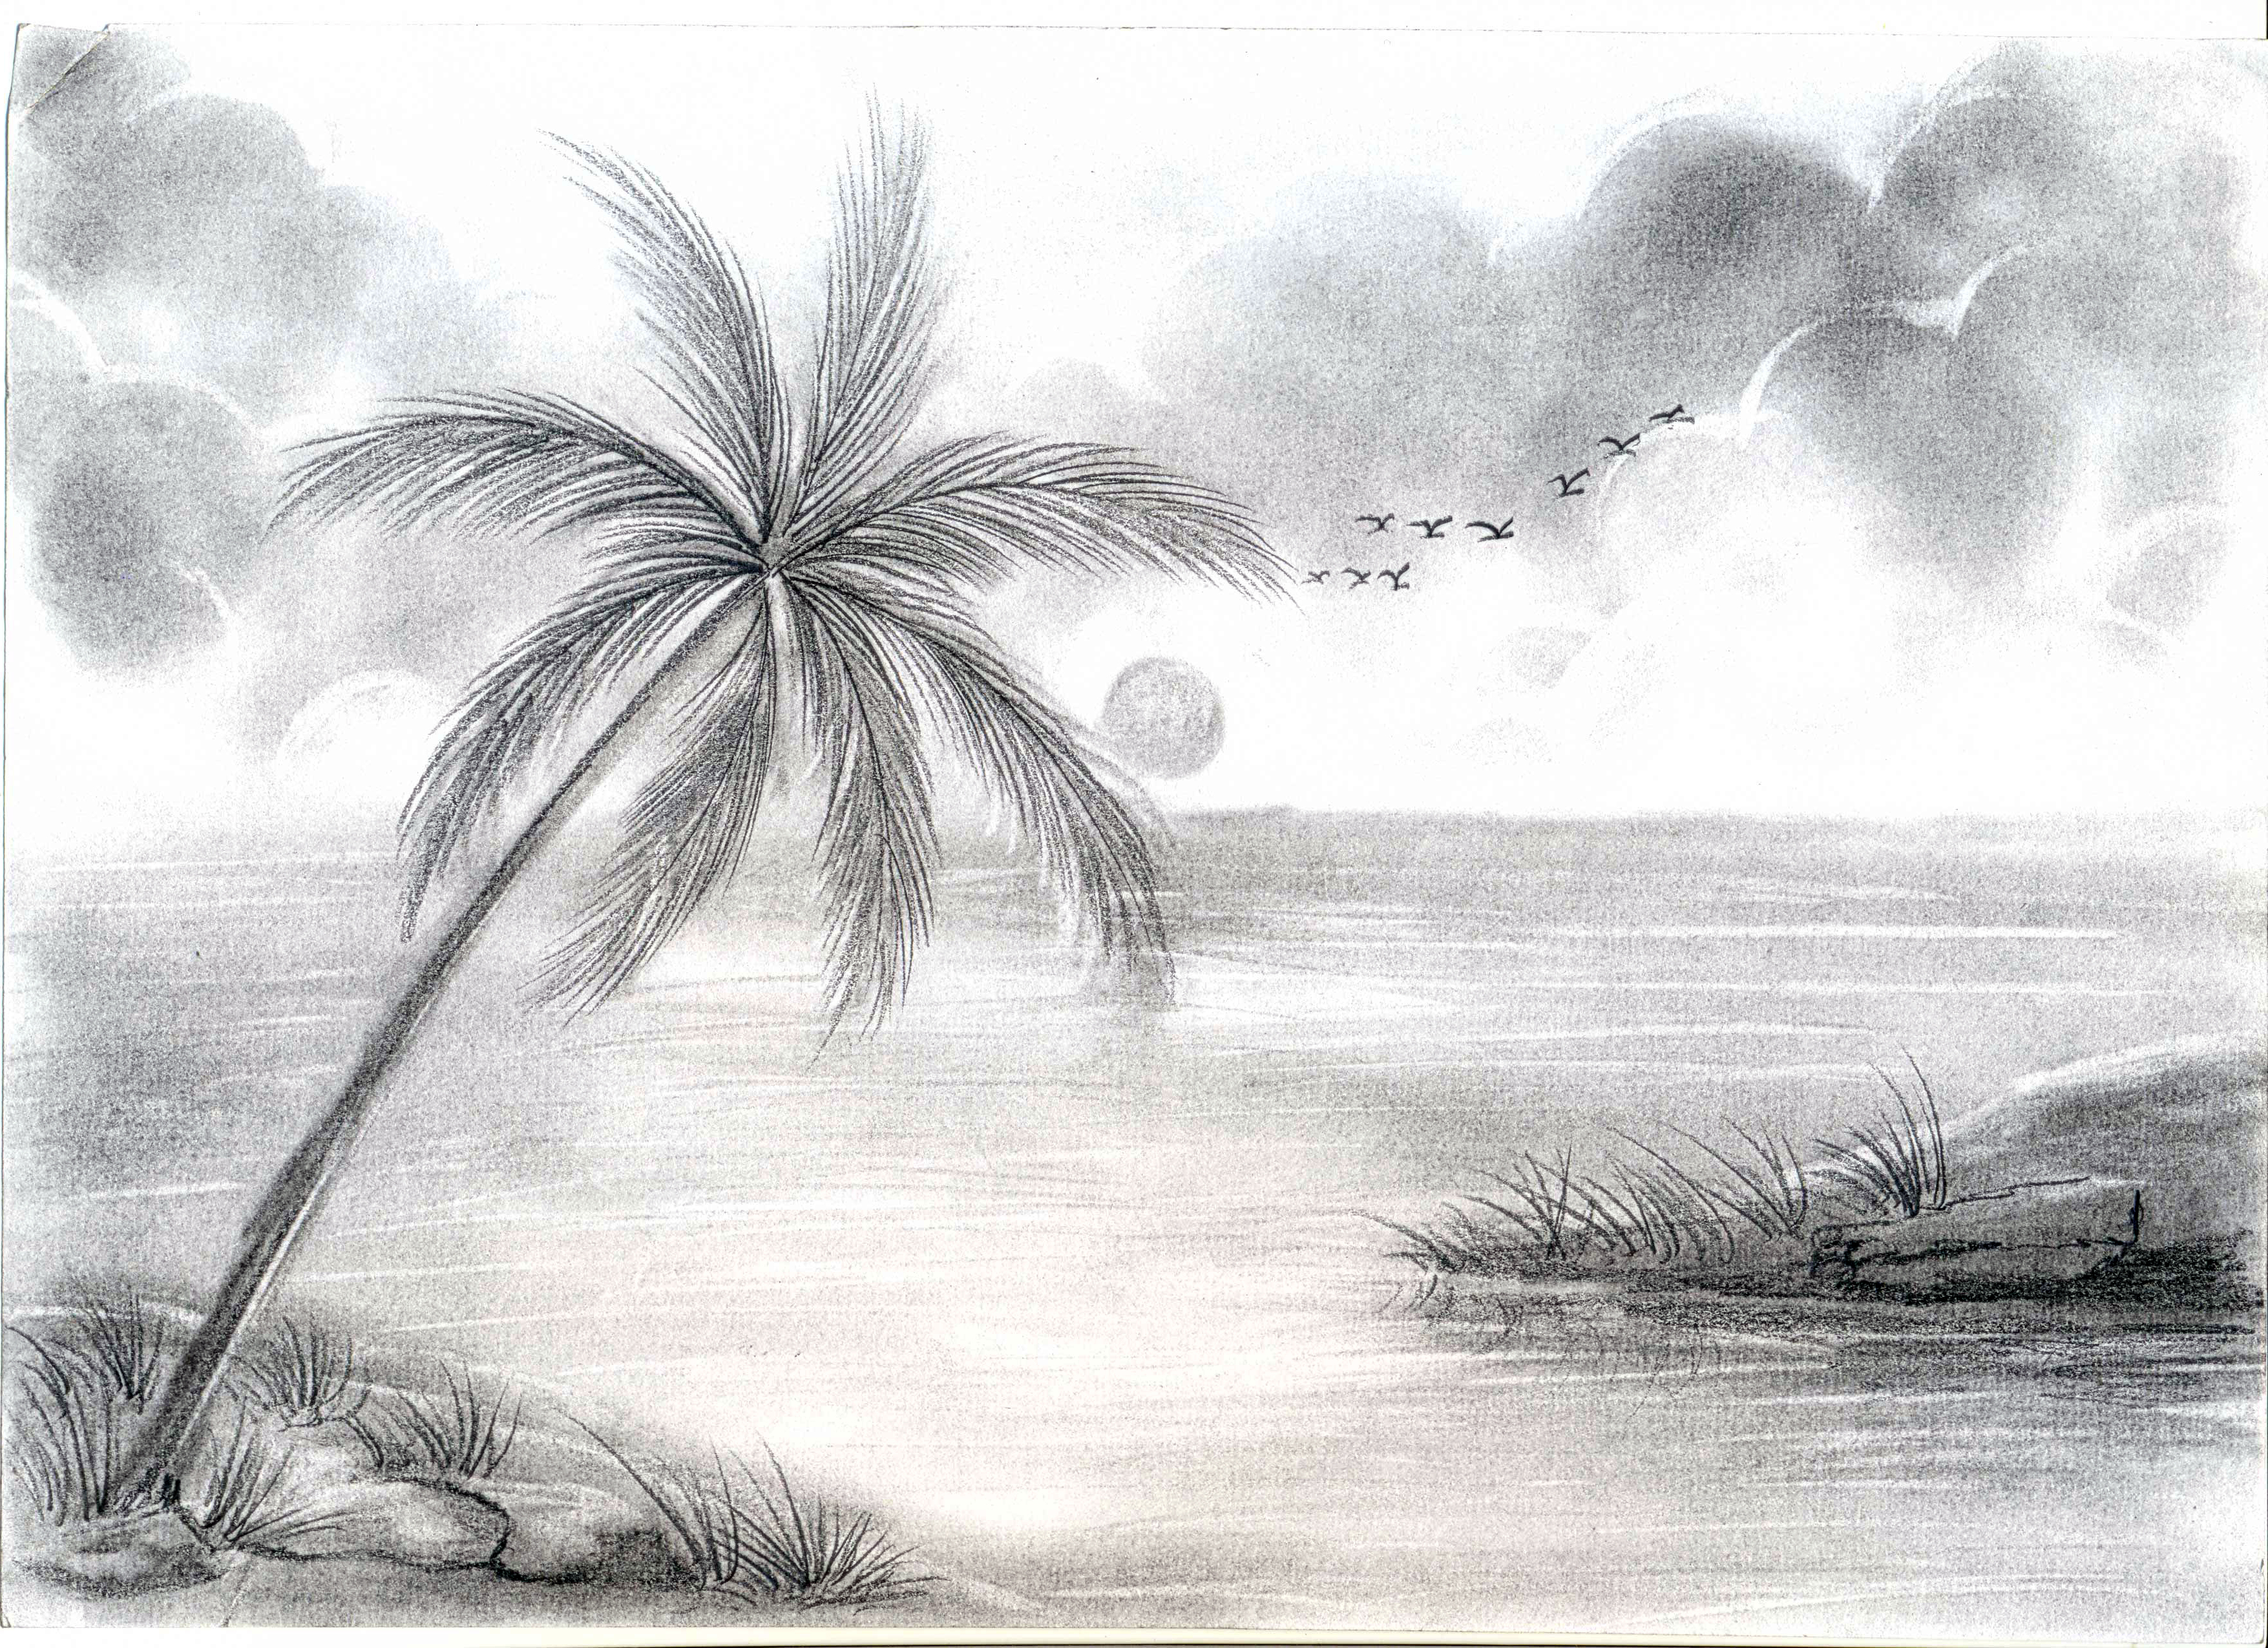 3510x2550 simple pencil sketching nature pencil drawing of nature scene pencil sketches of nature